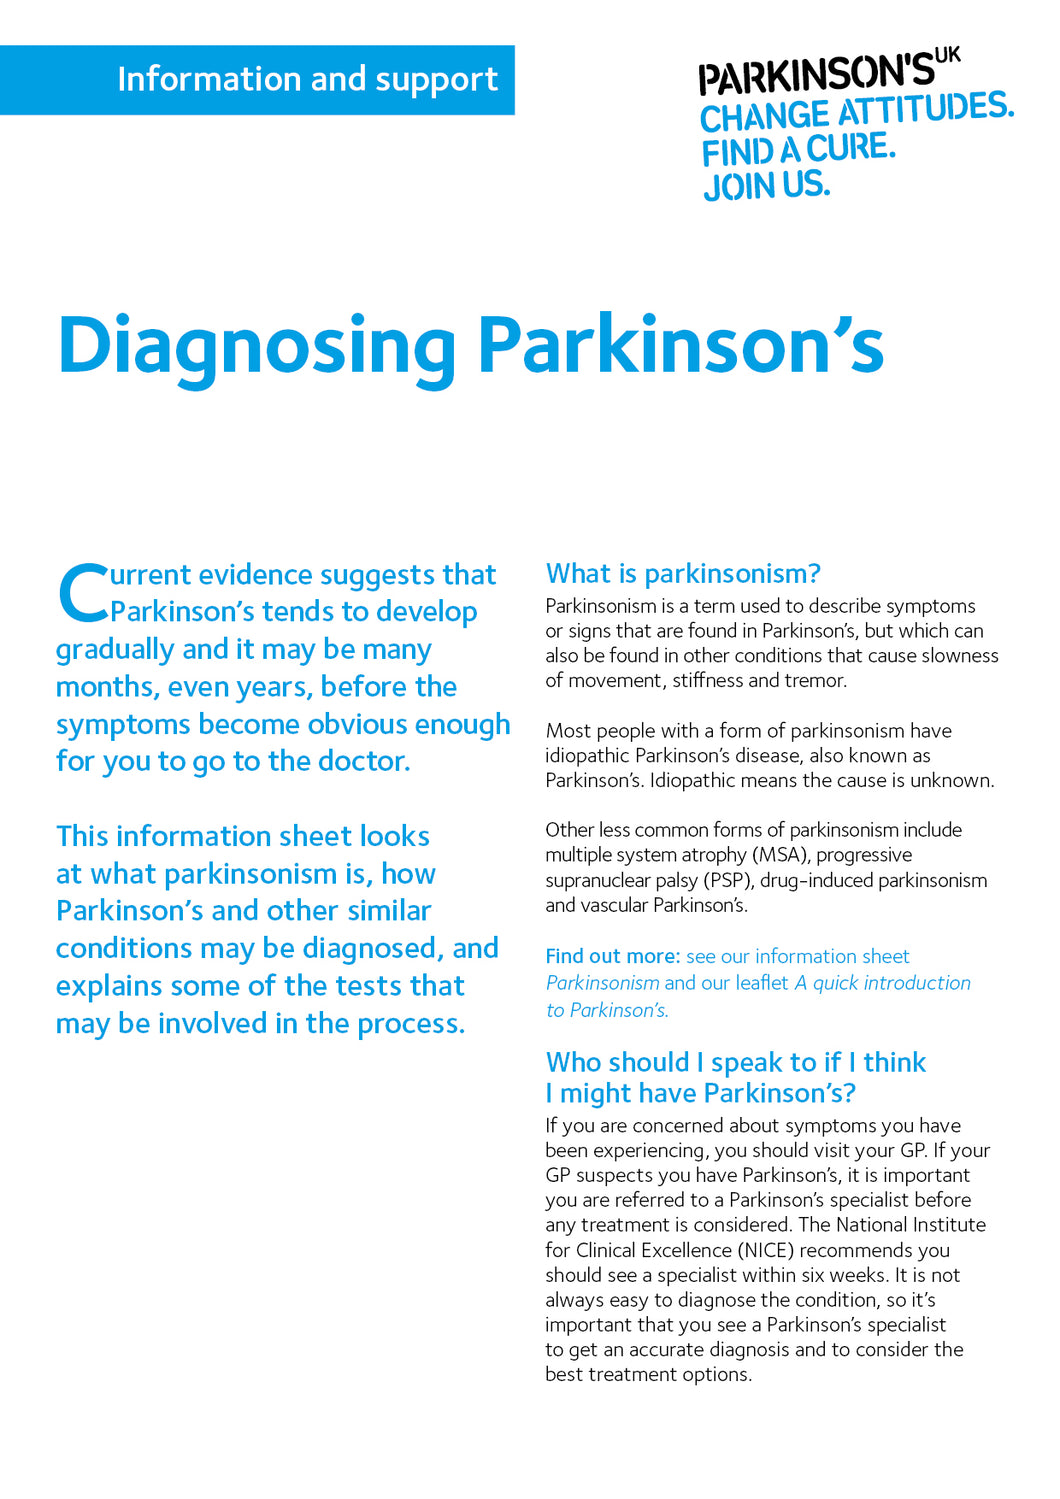 Diagnosing Parkinson's - Parkinson's shop